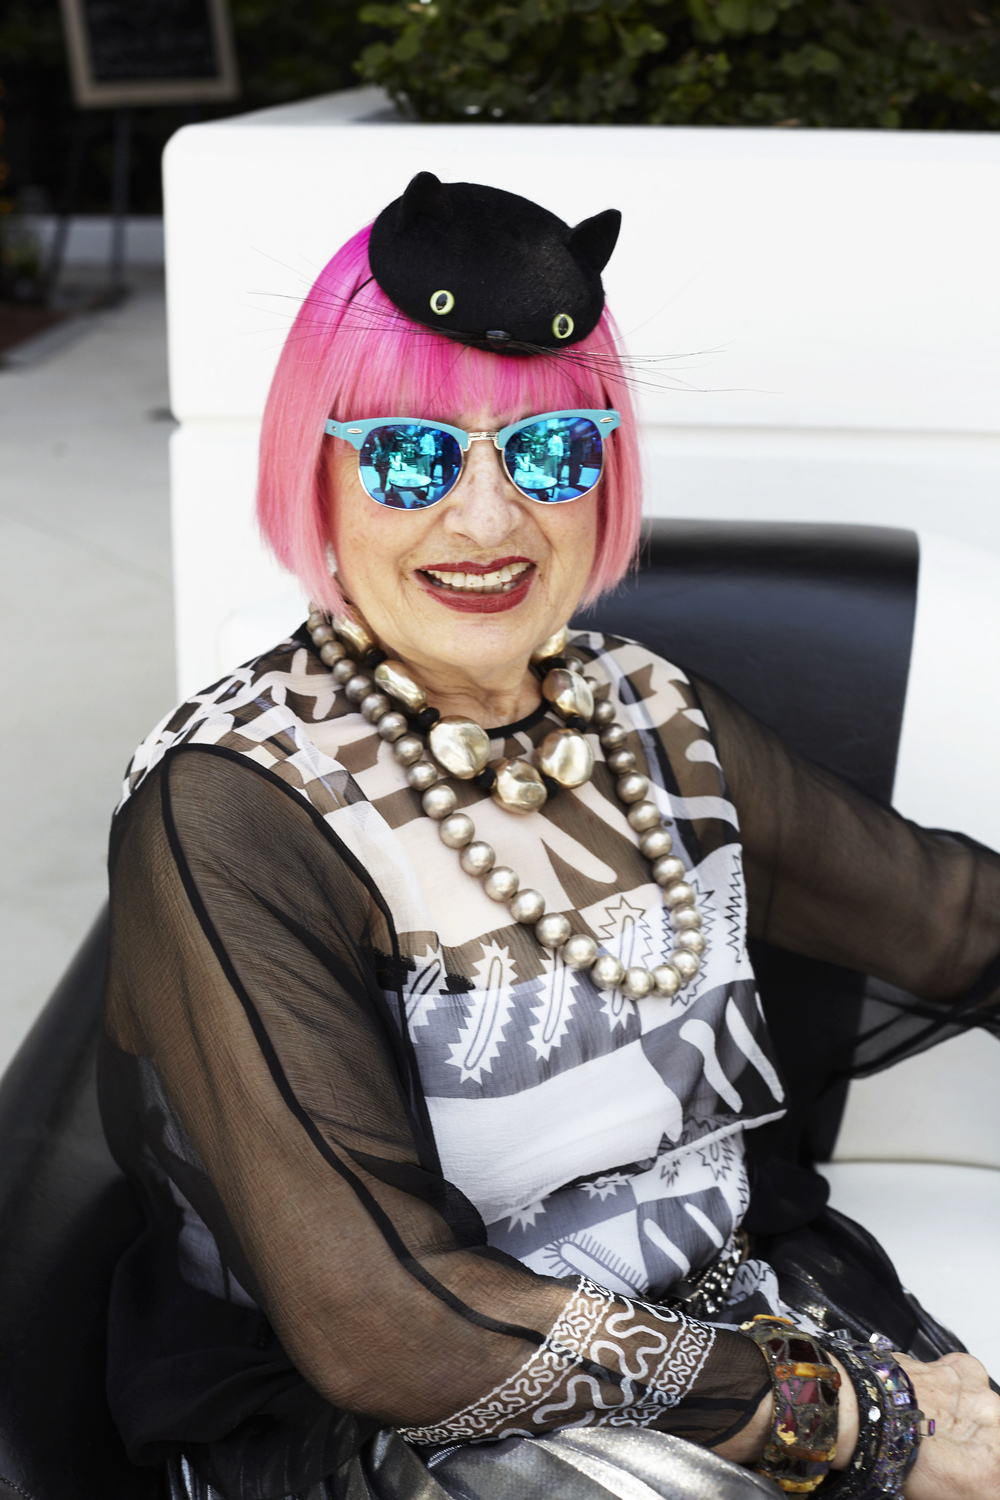 Zandra Rhodes in our Mini Black Cat at the Shangri-La Hotel in Santa Monica for Brit Week.